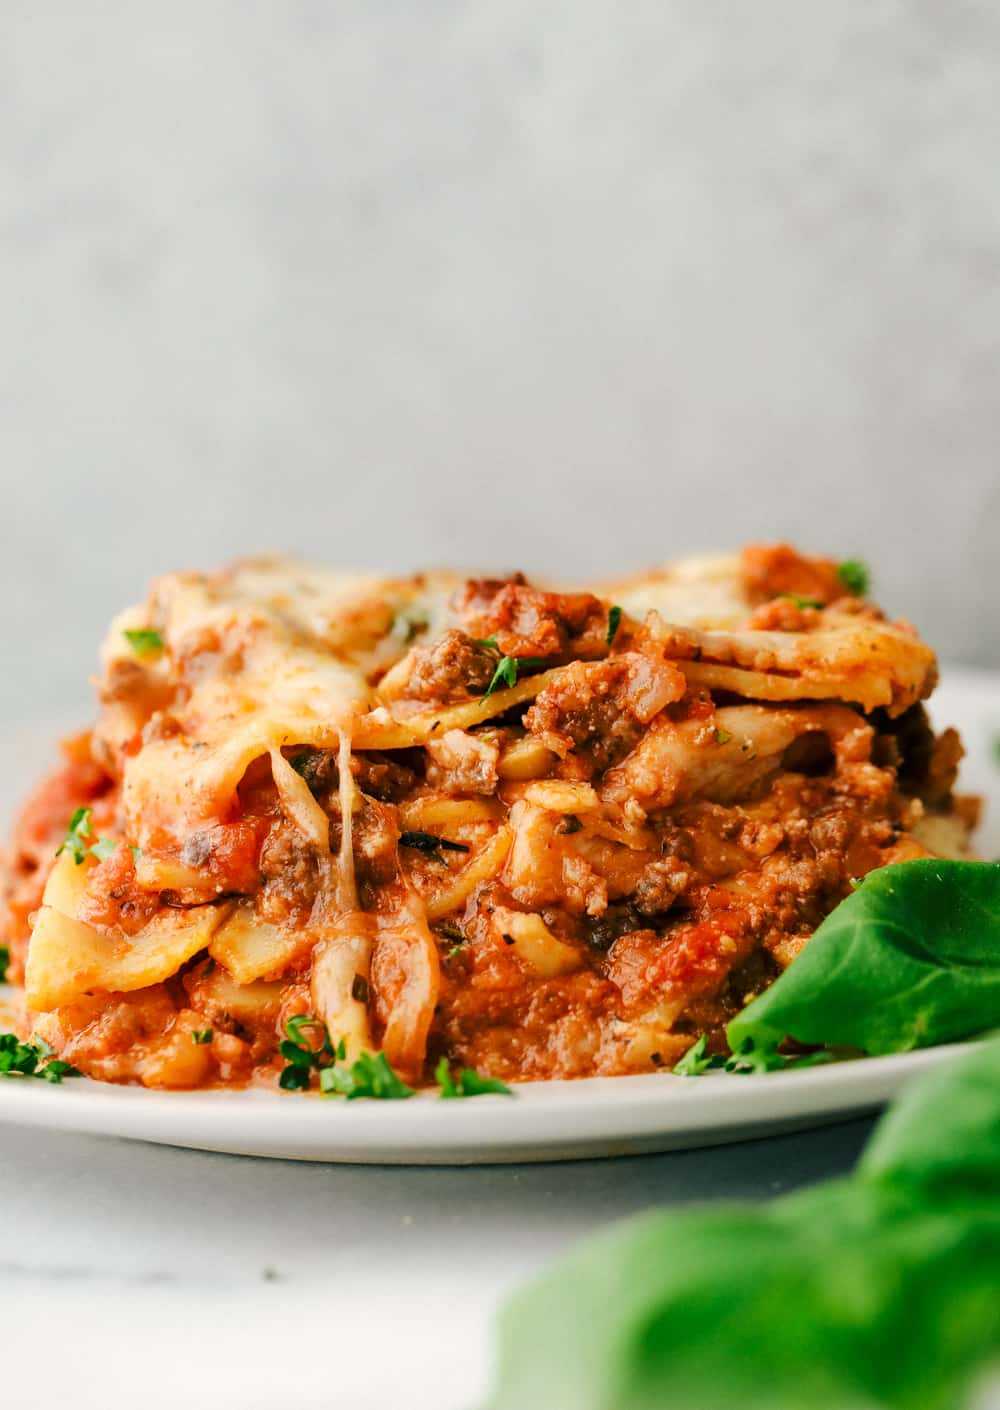 Baked lasagna on a plate